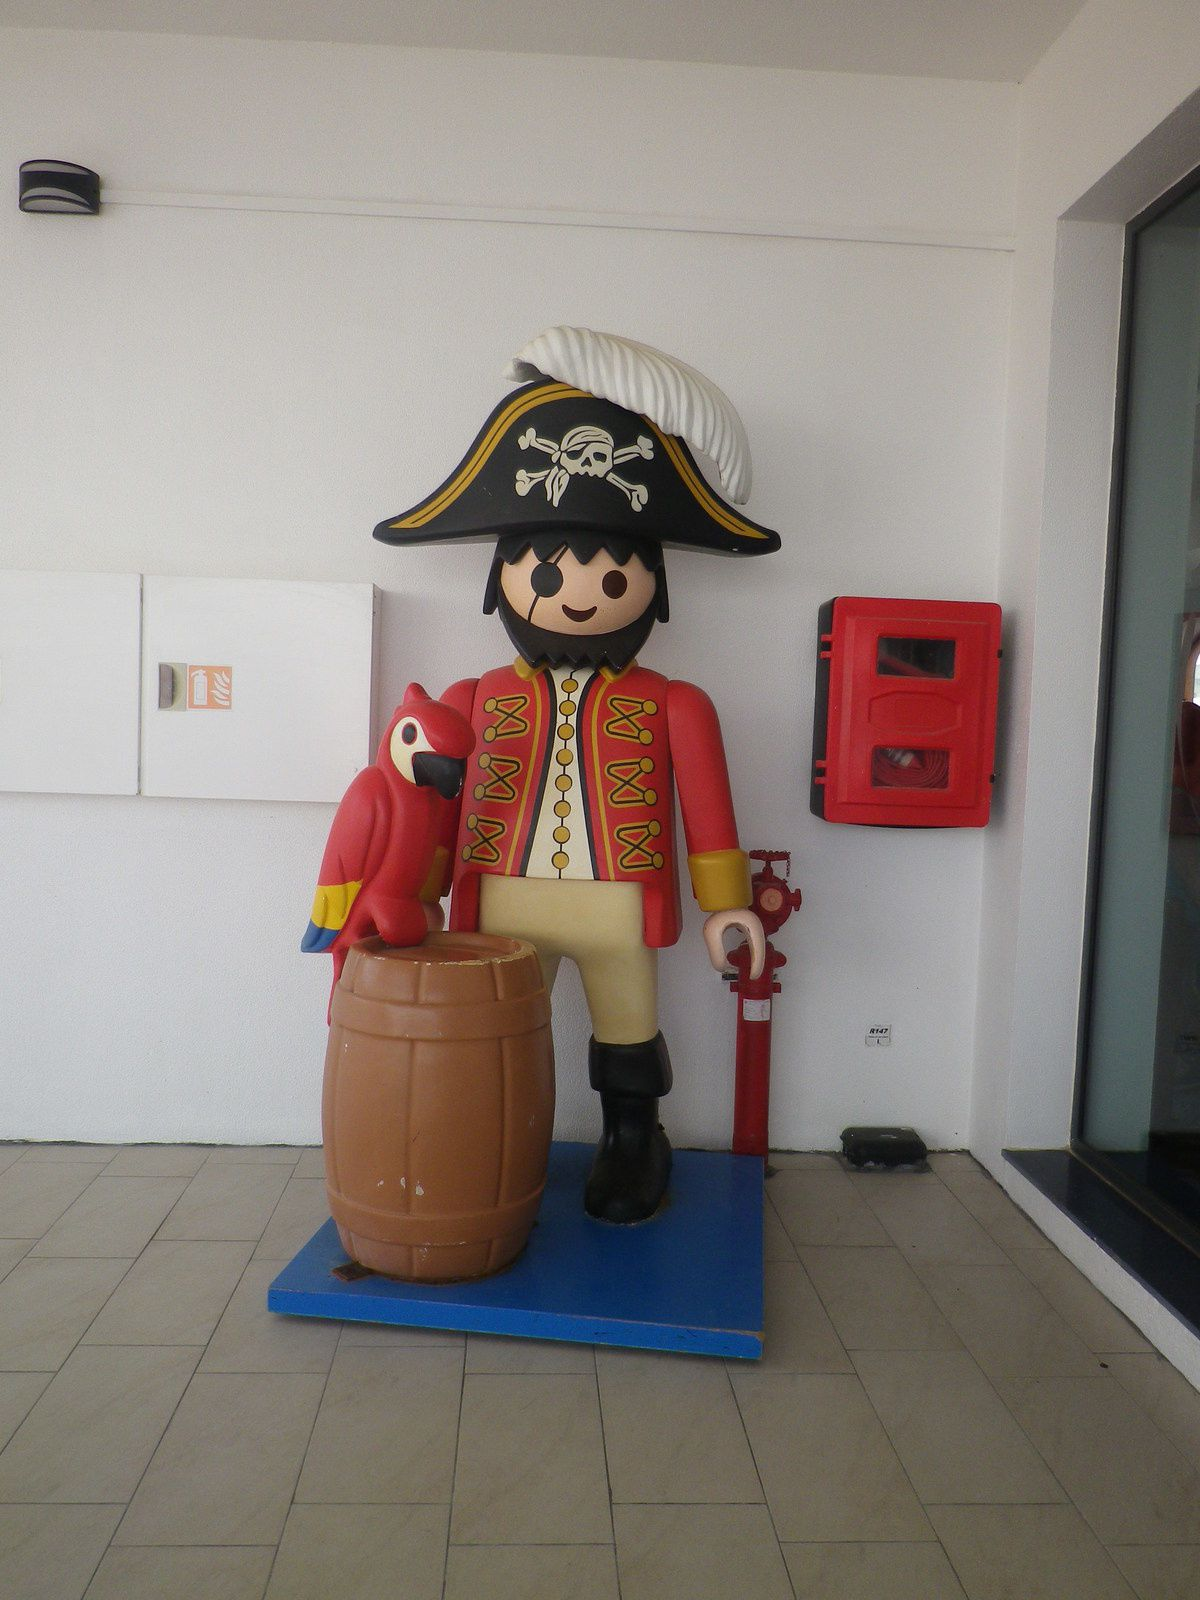 Welcome to PLAYMOBIL MALTA